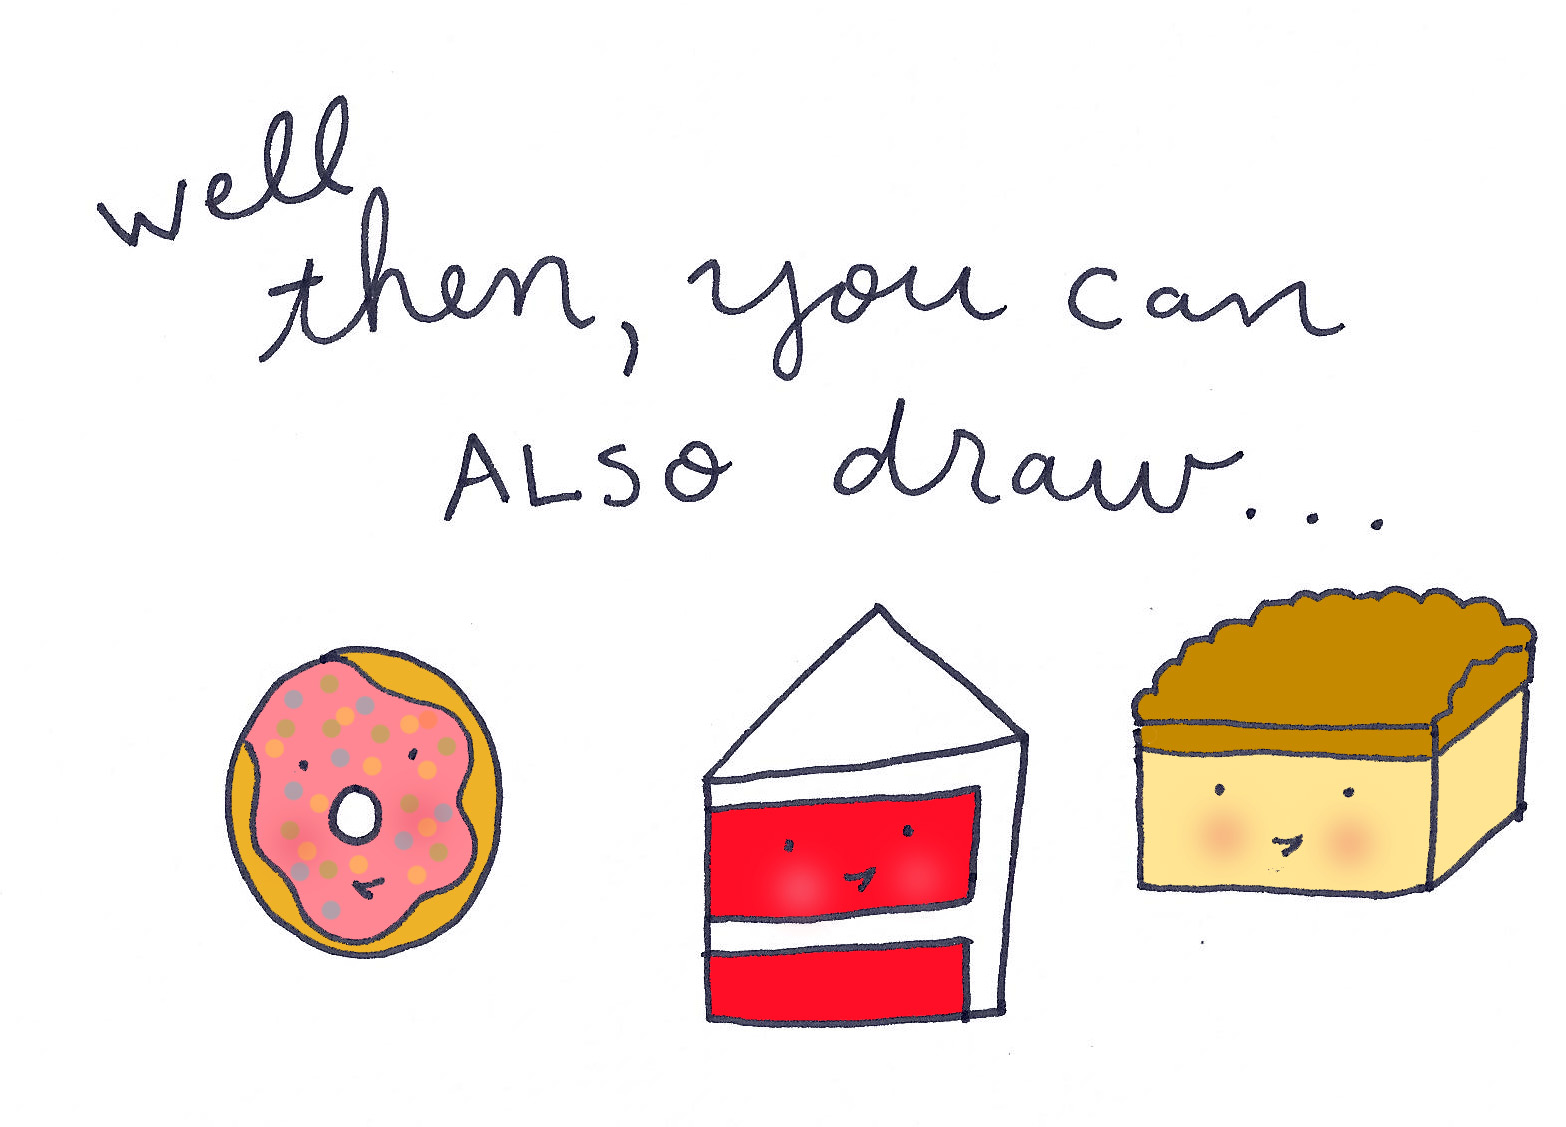 Drawn cake pastry To Adorable pastries! Illustrated draw